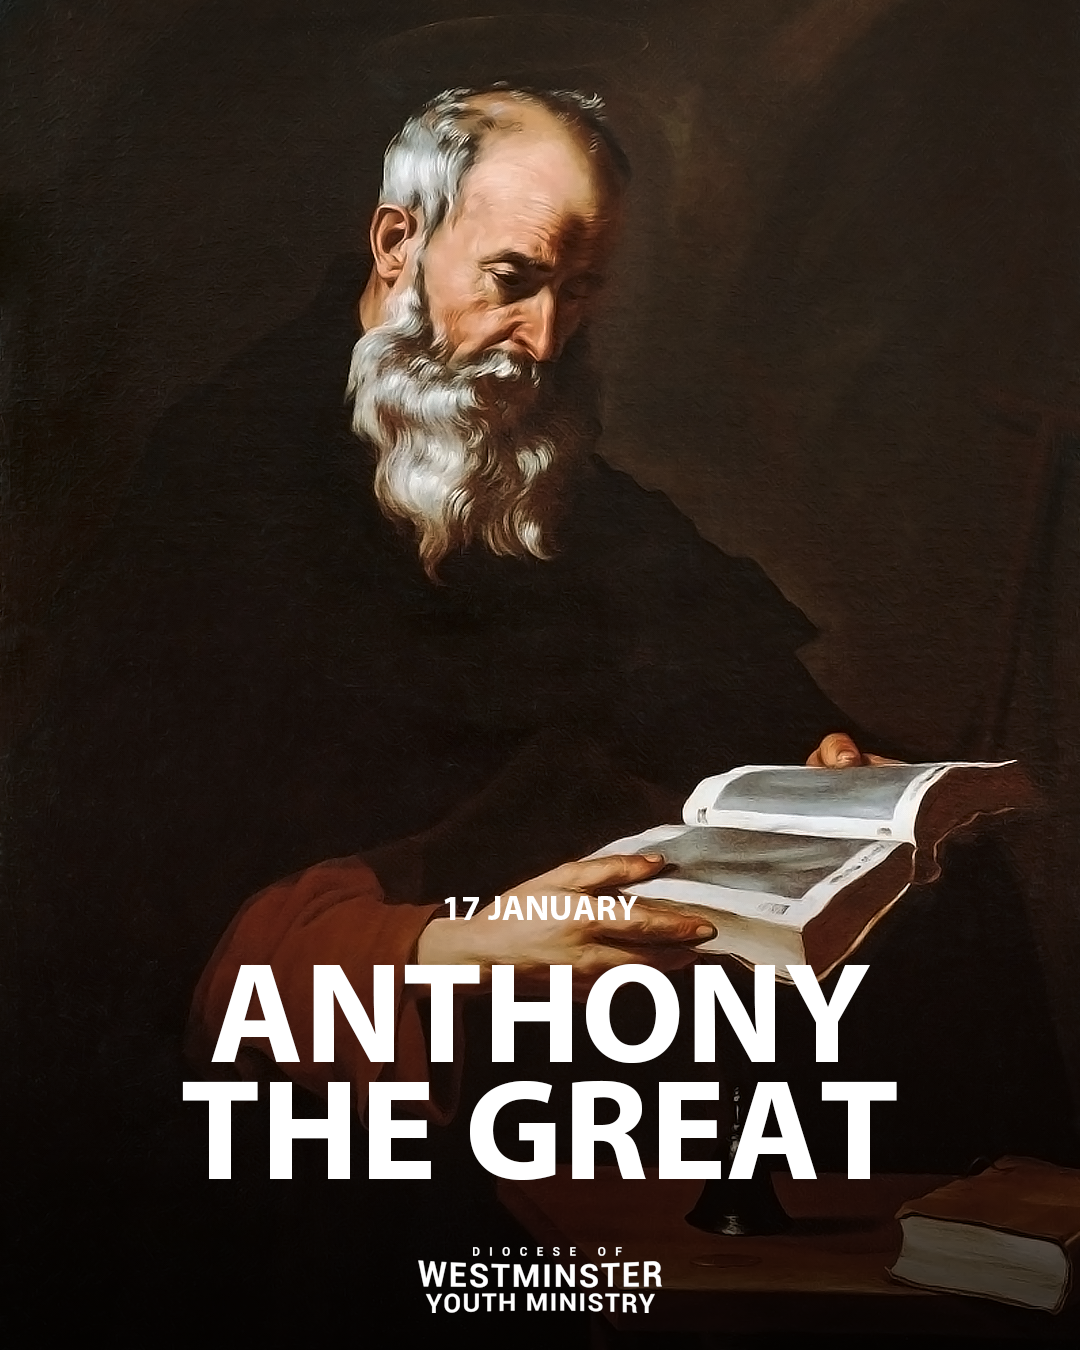 Today is the Feast Day of St Anthony the Great